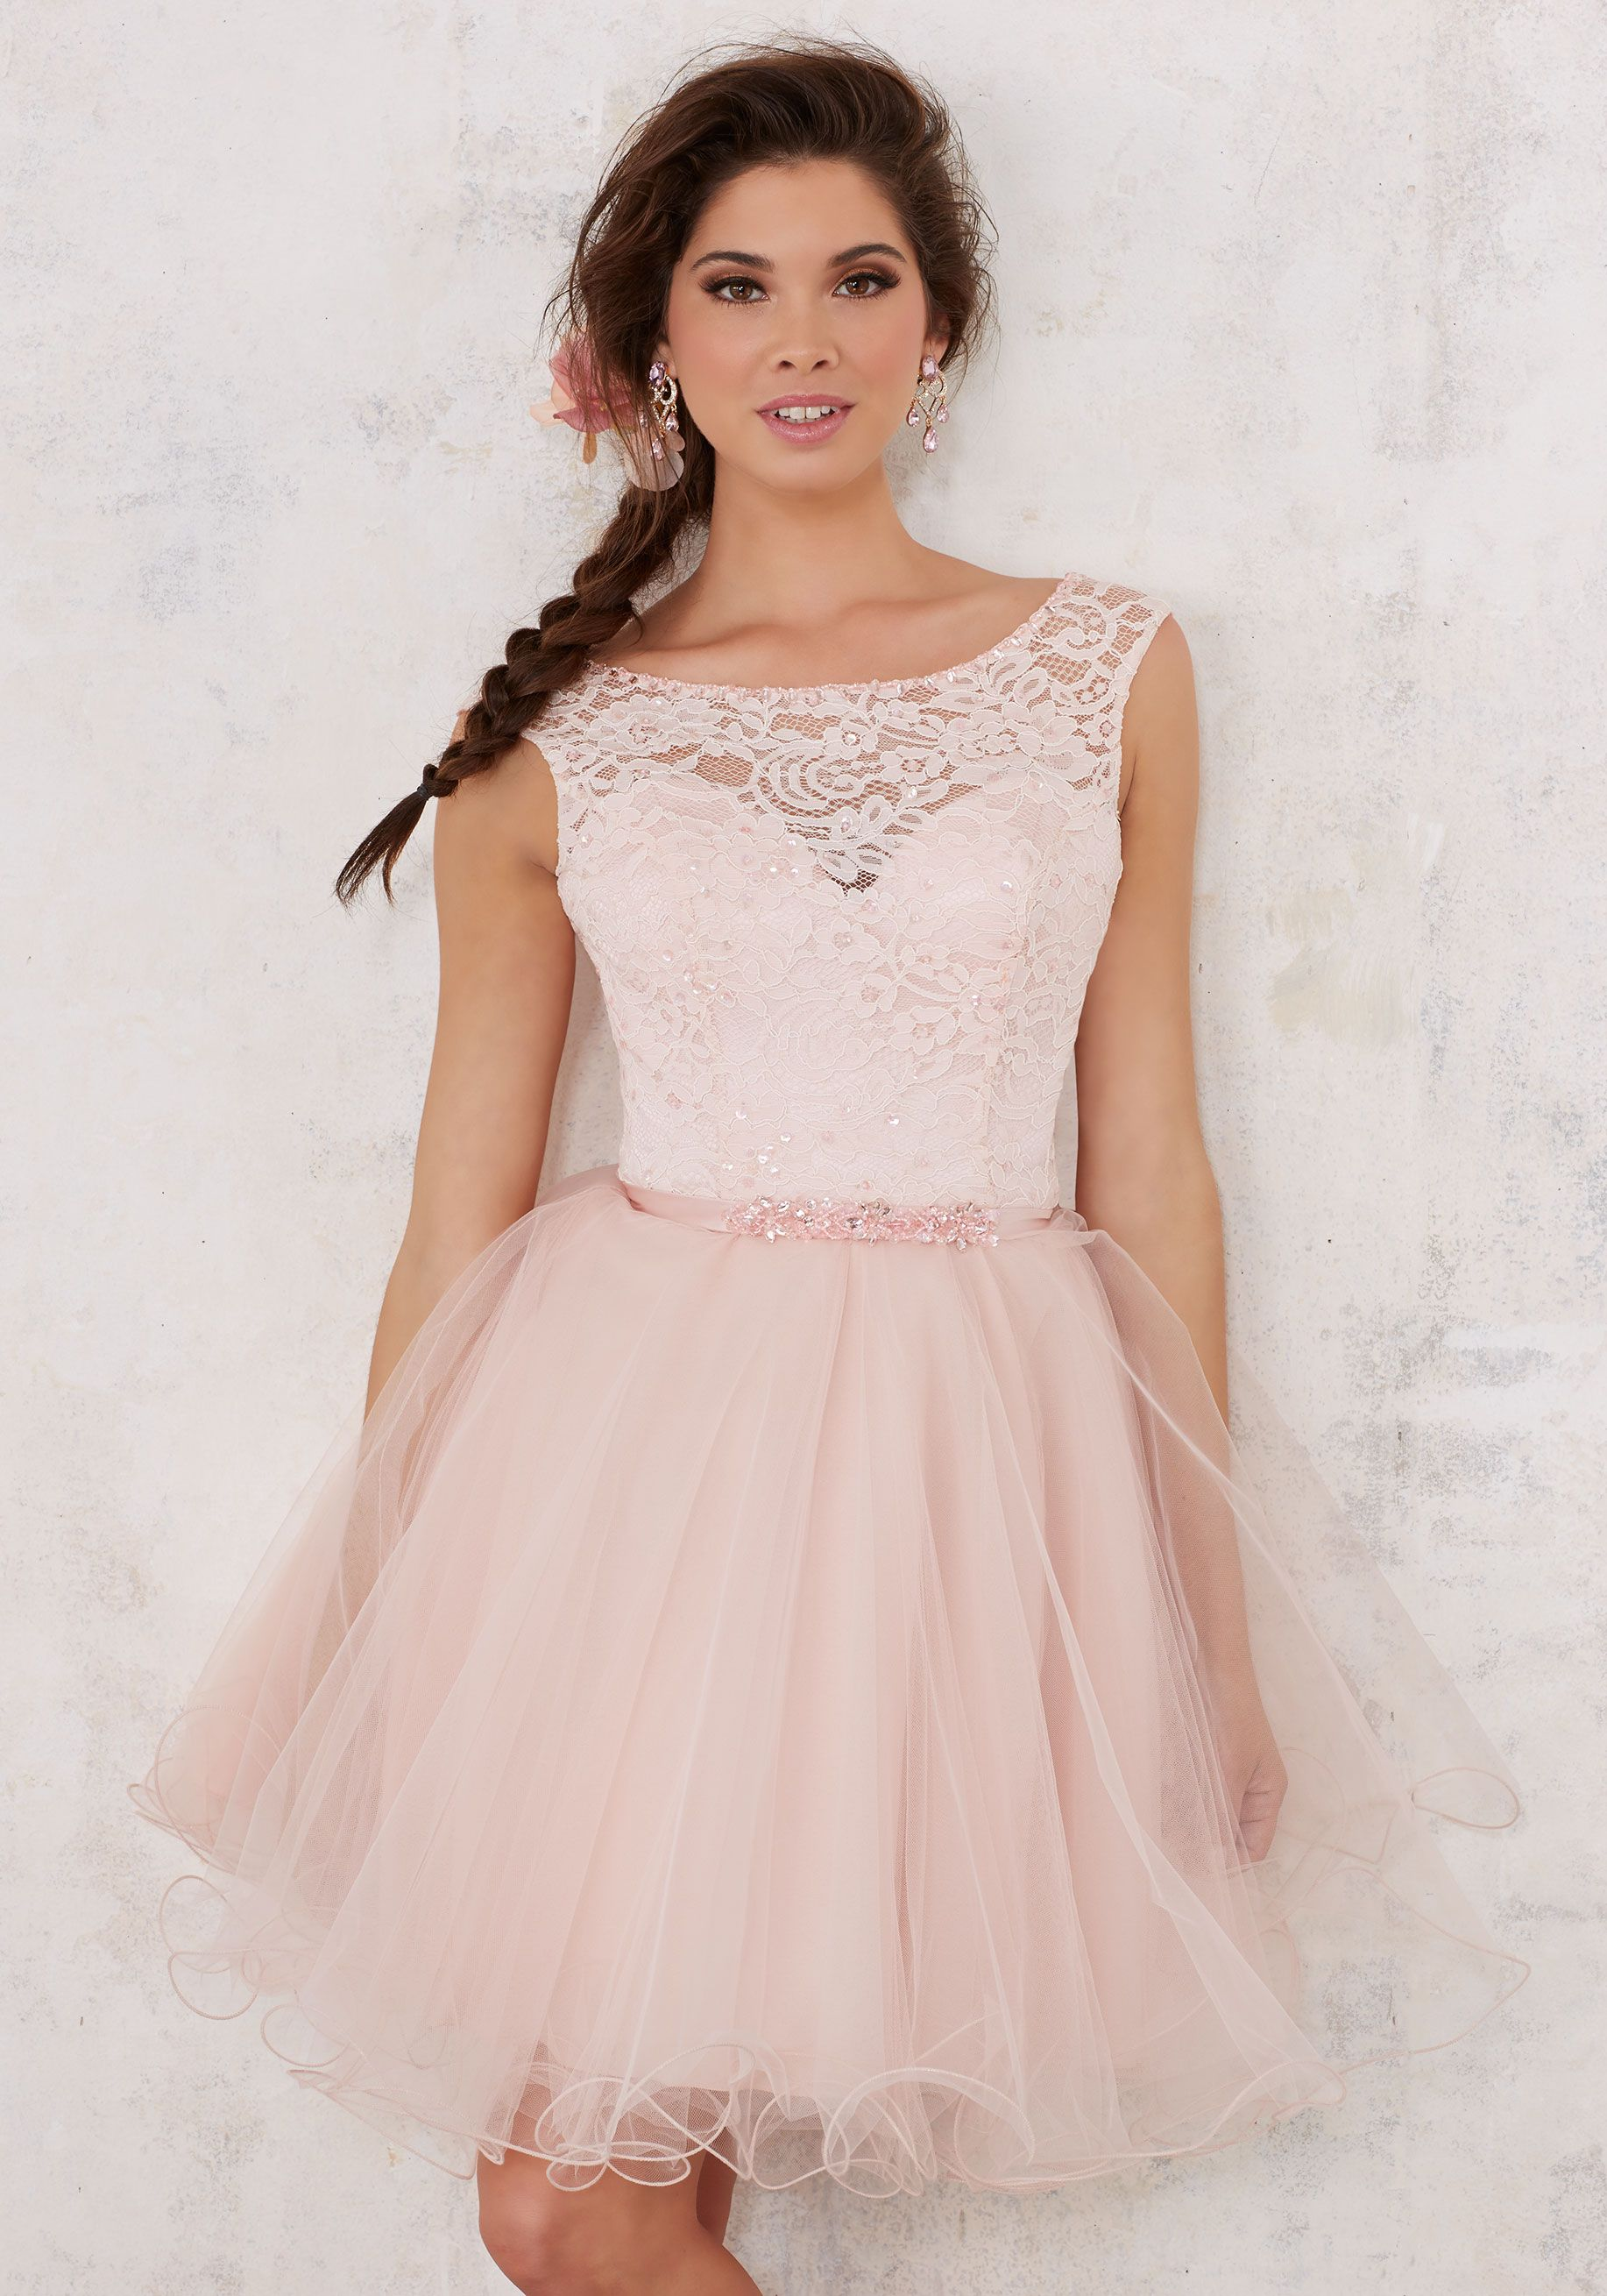 69bb7eff397 Quinceanera Dresses by Morilee designed by Madeline Gardner. Beautiful  Quinceañera Bridesmaids Dress Featuring a Lace Bodice and Full Tulle Skirt.